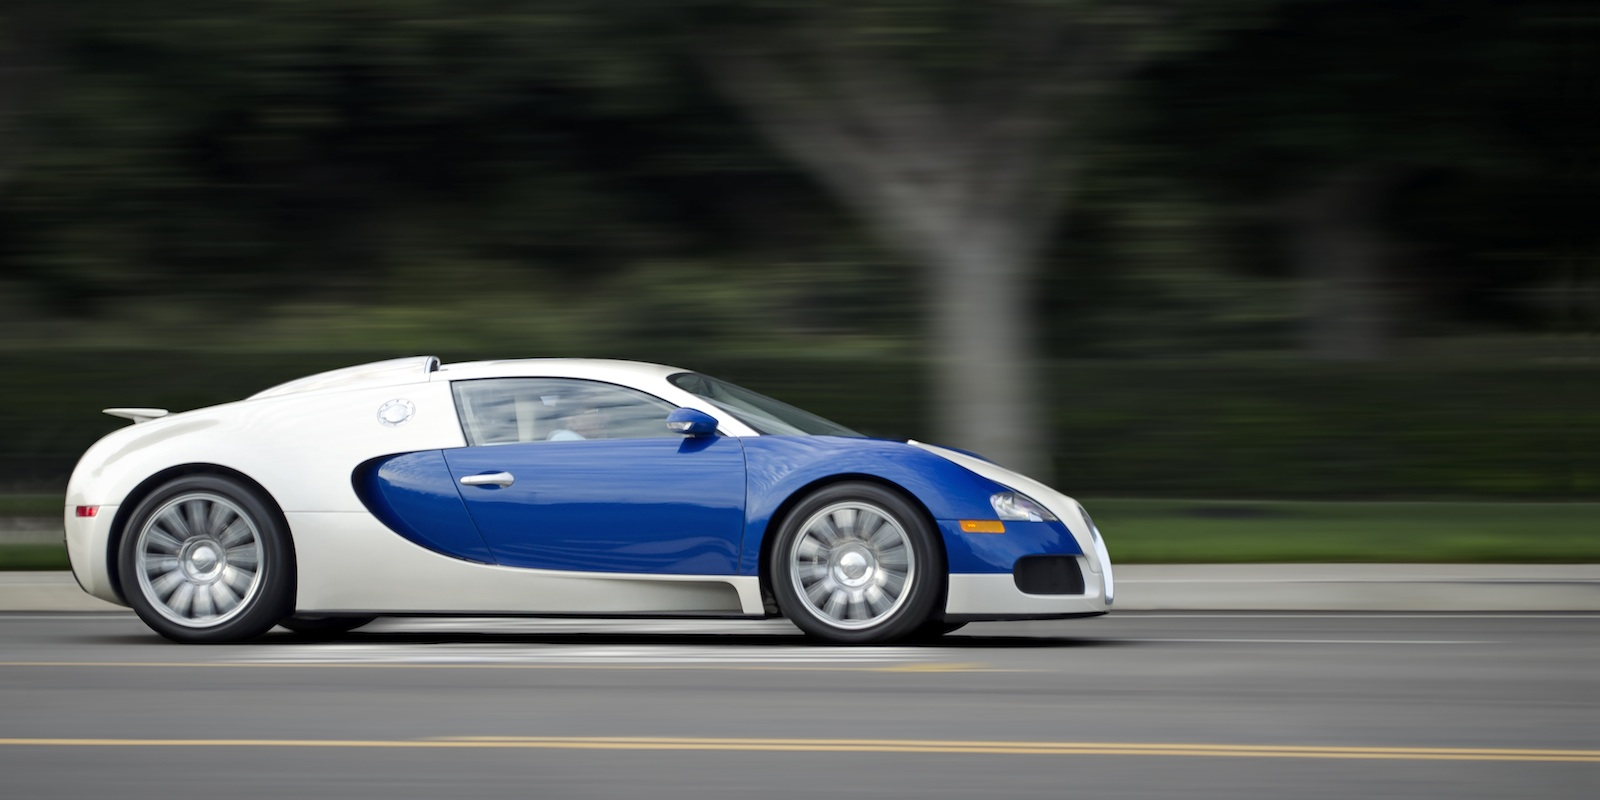 What Does Your Organization and the Bugatti Veyron Have in Common?